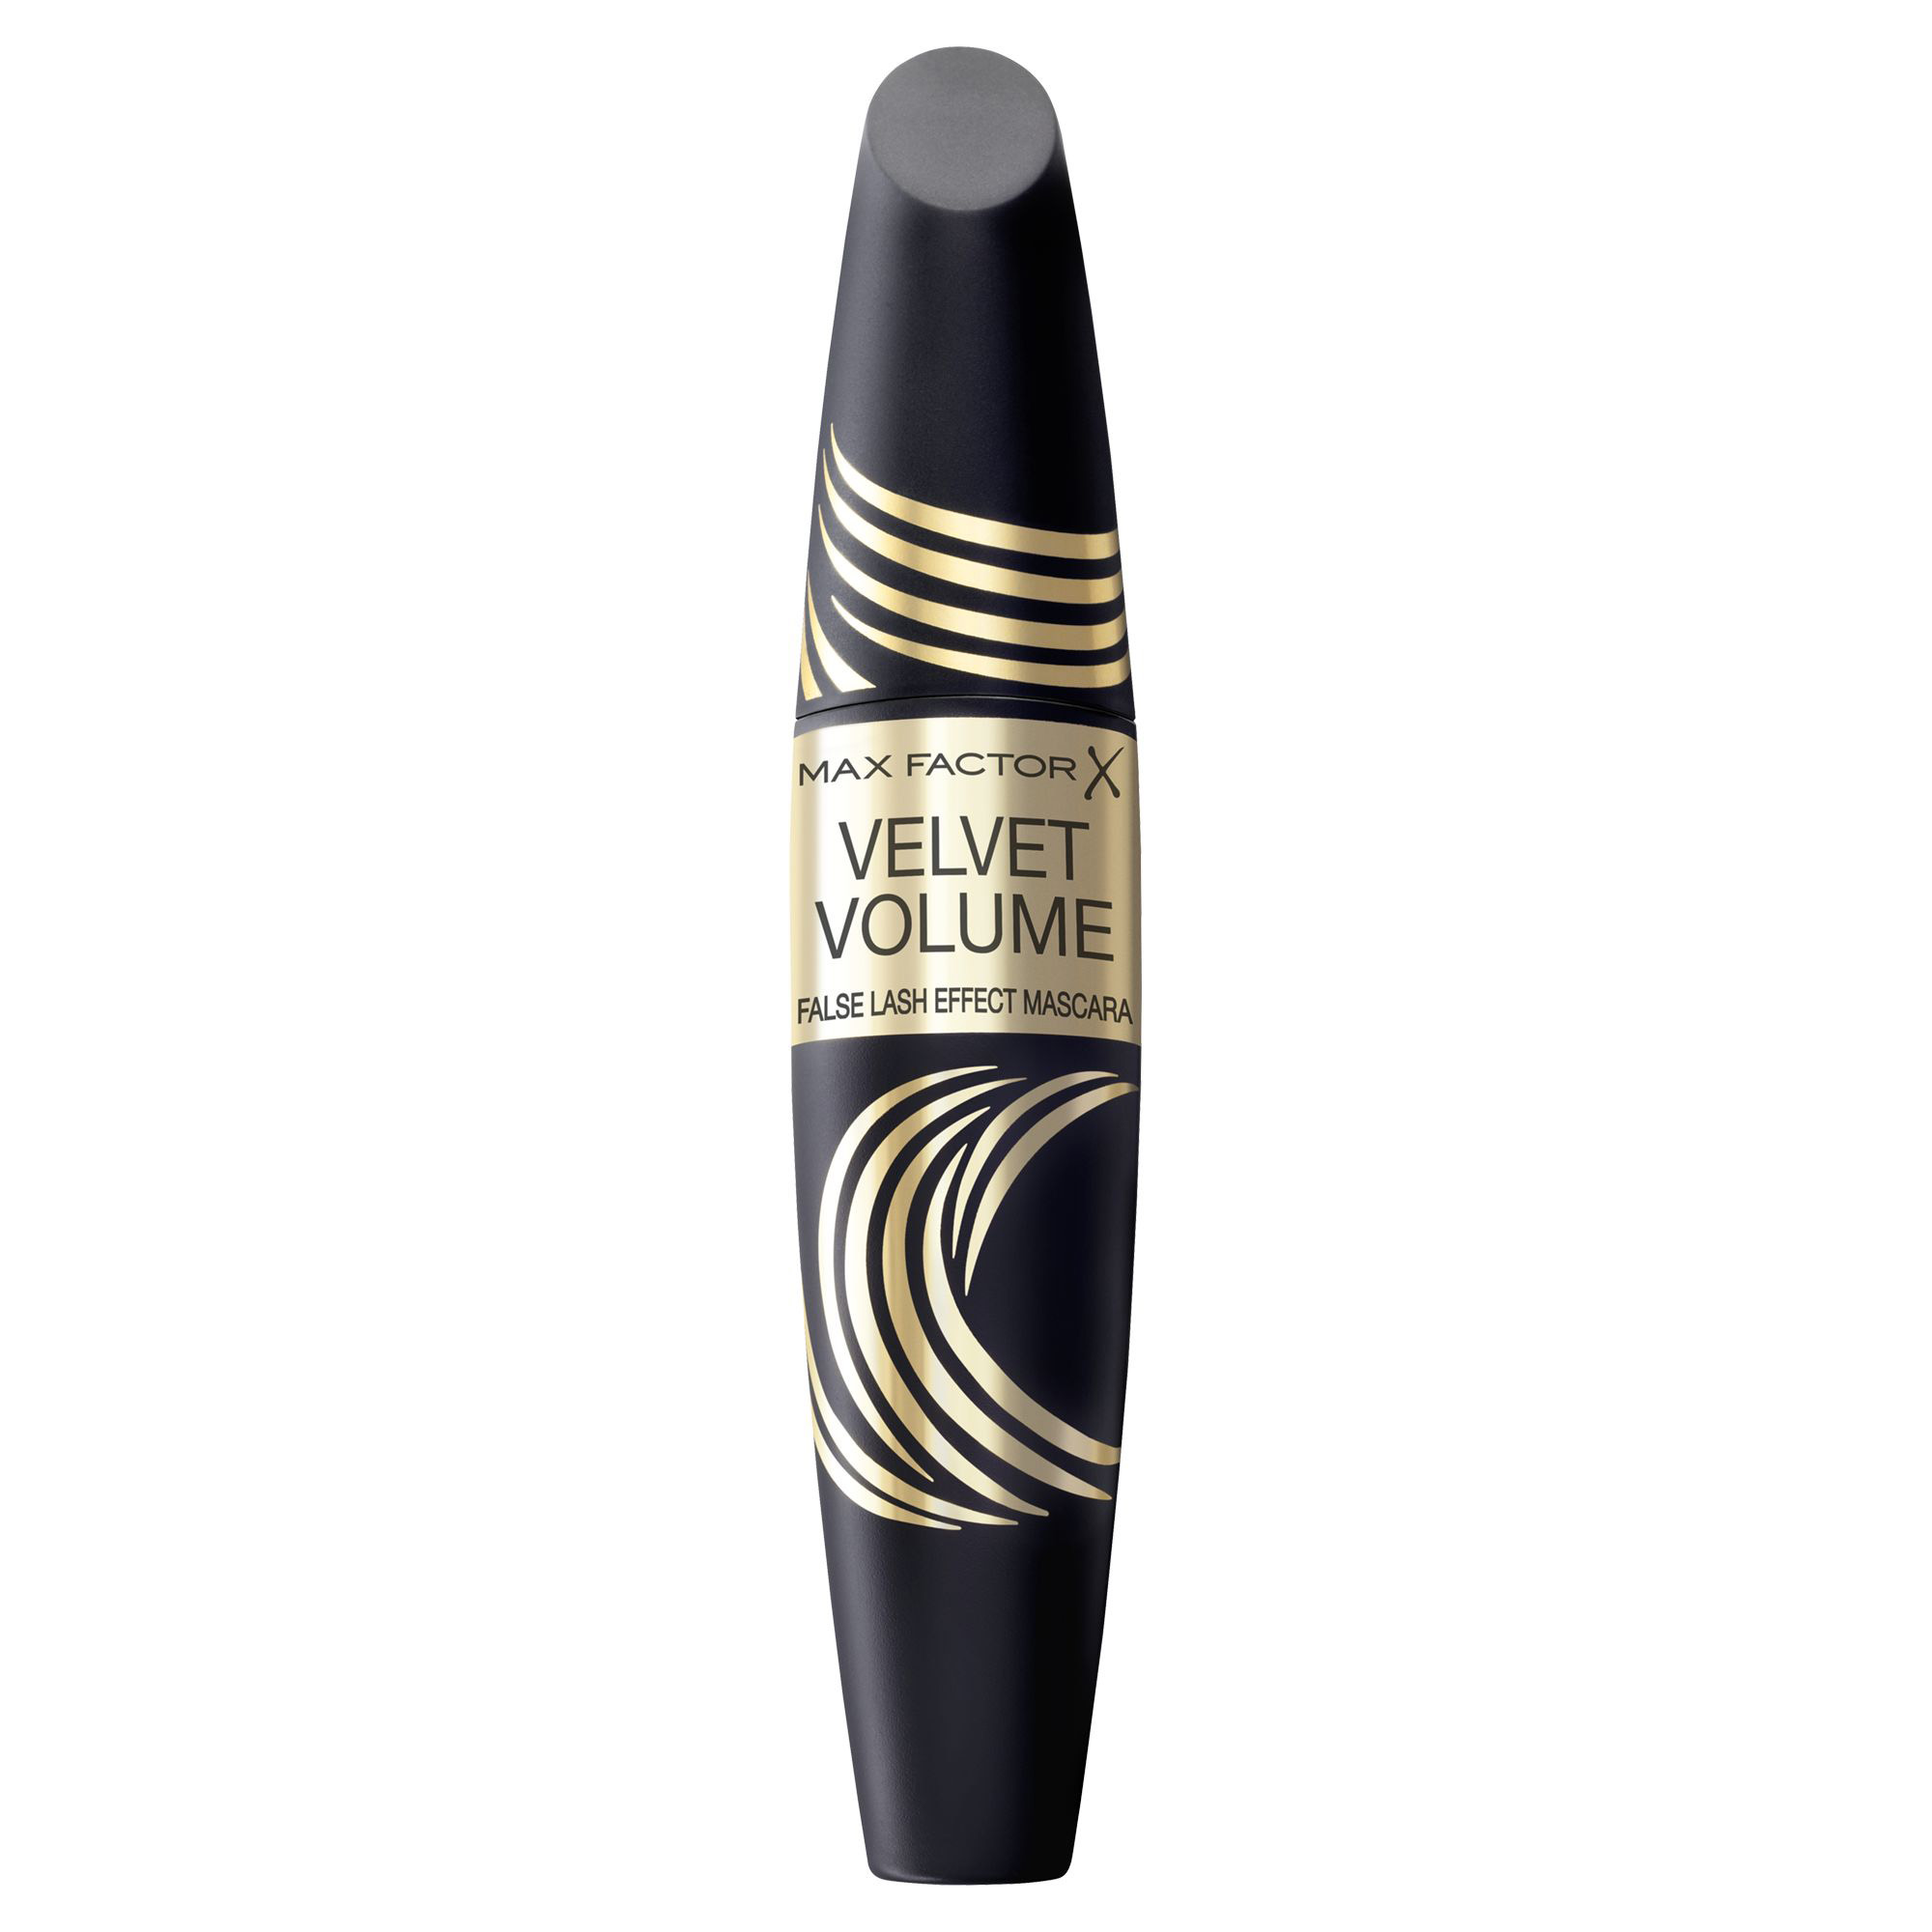 Max Factor Тушь c эффектом накладных ресниц False Lash Effect Velvet Volume Тон black brown тушь для ресниц max factor false lash effect epic mascara 01 цвет 01 black variant hex name 000000 вес 20 00